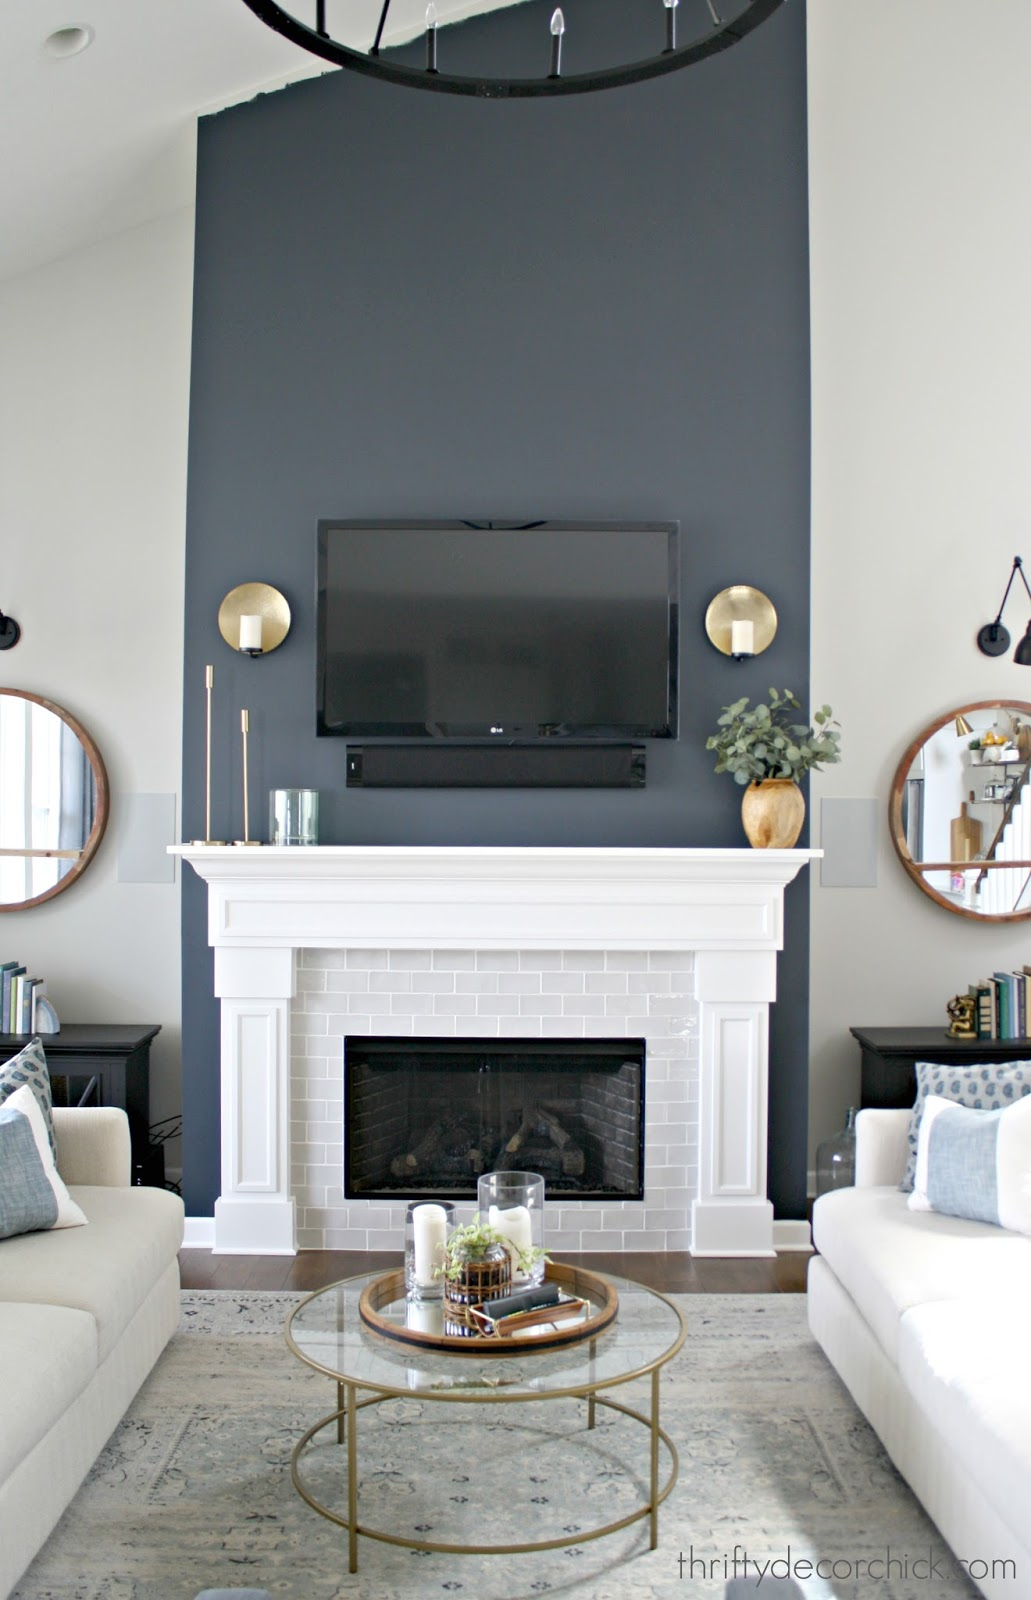 Painting a fireplace wall a dark contrast color